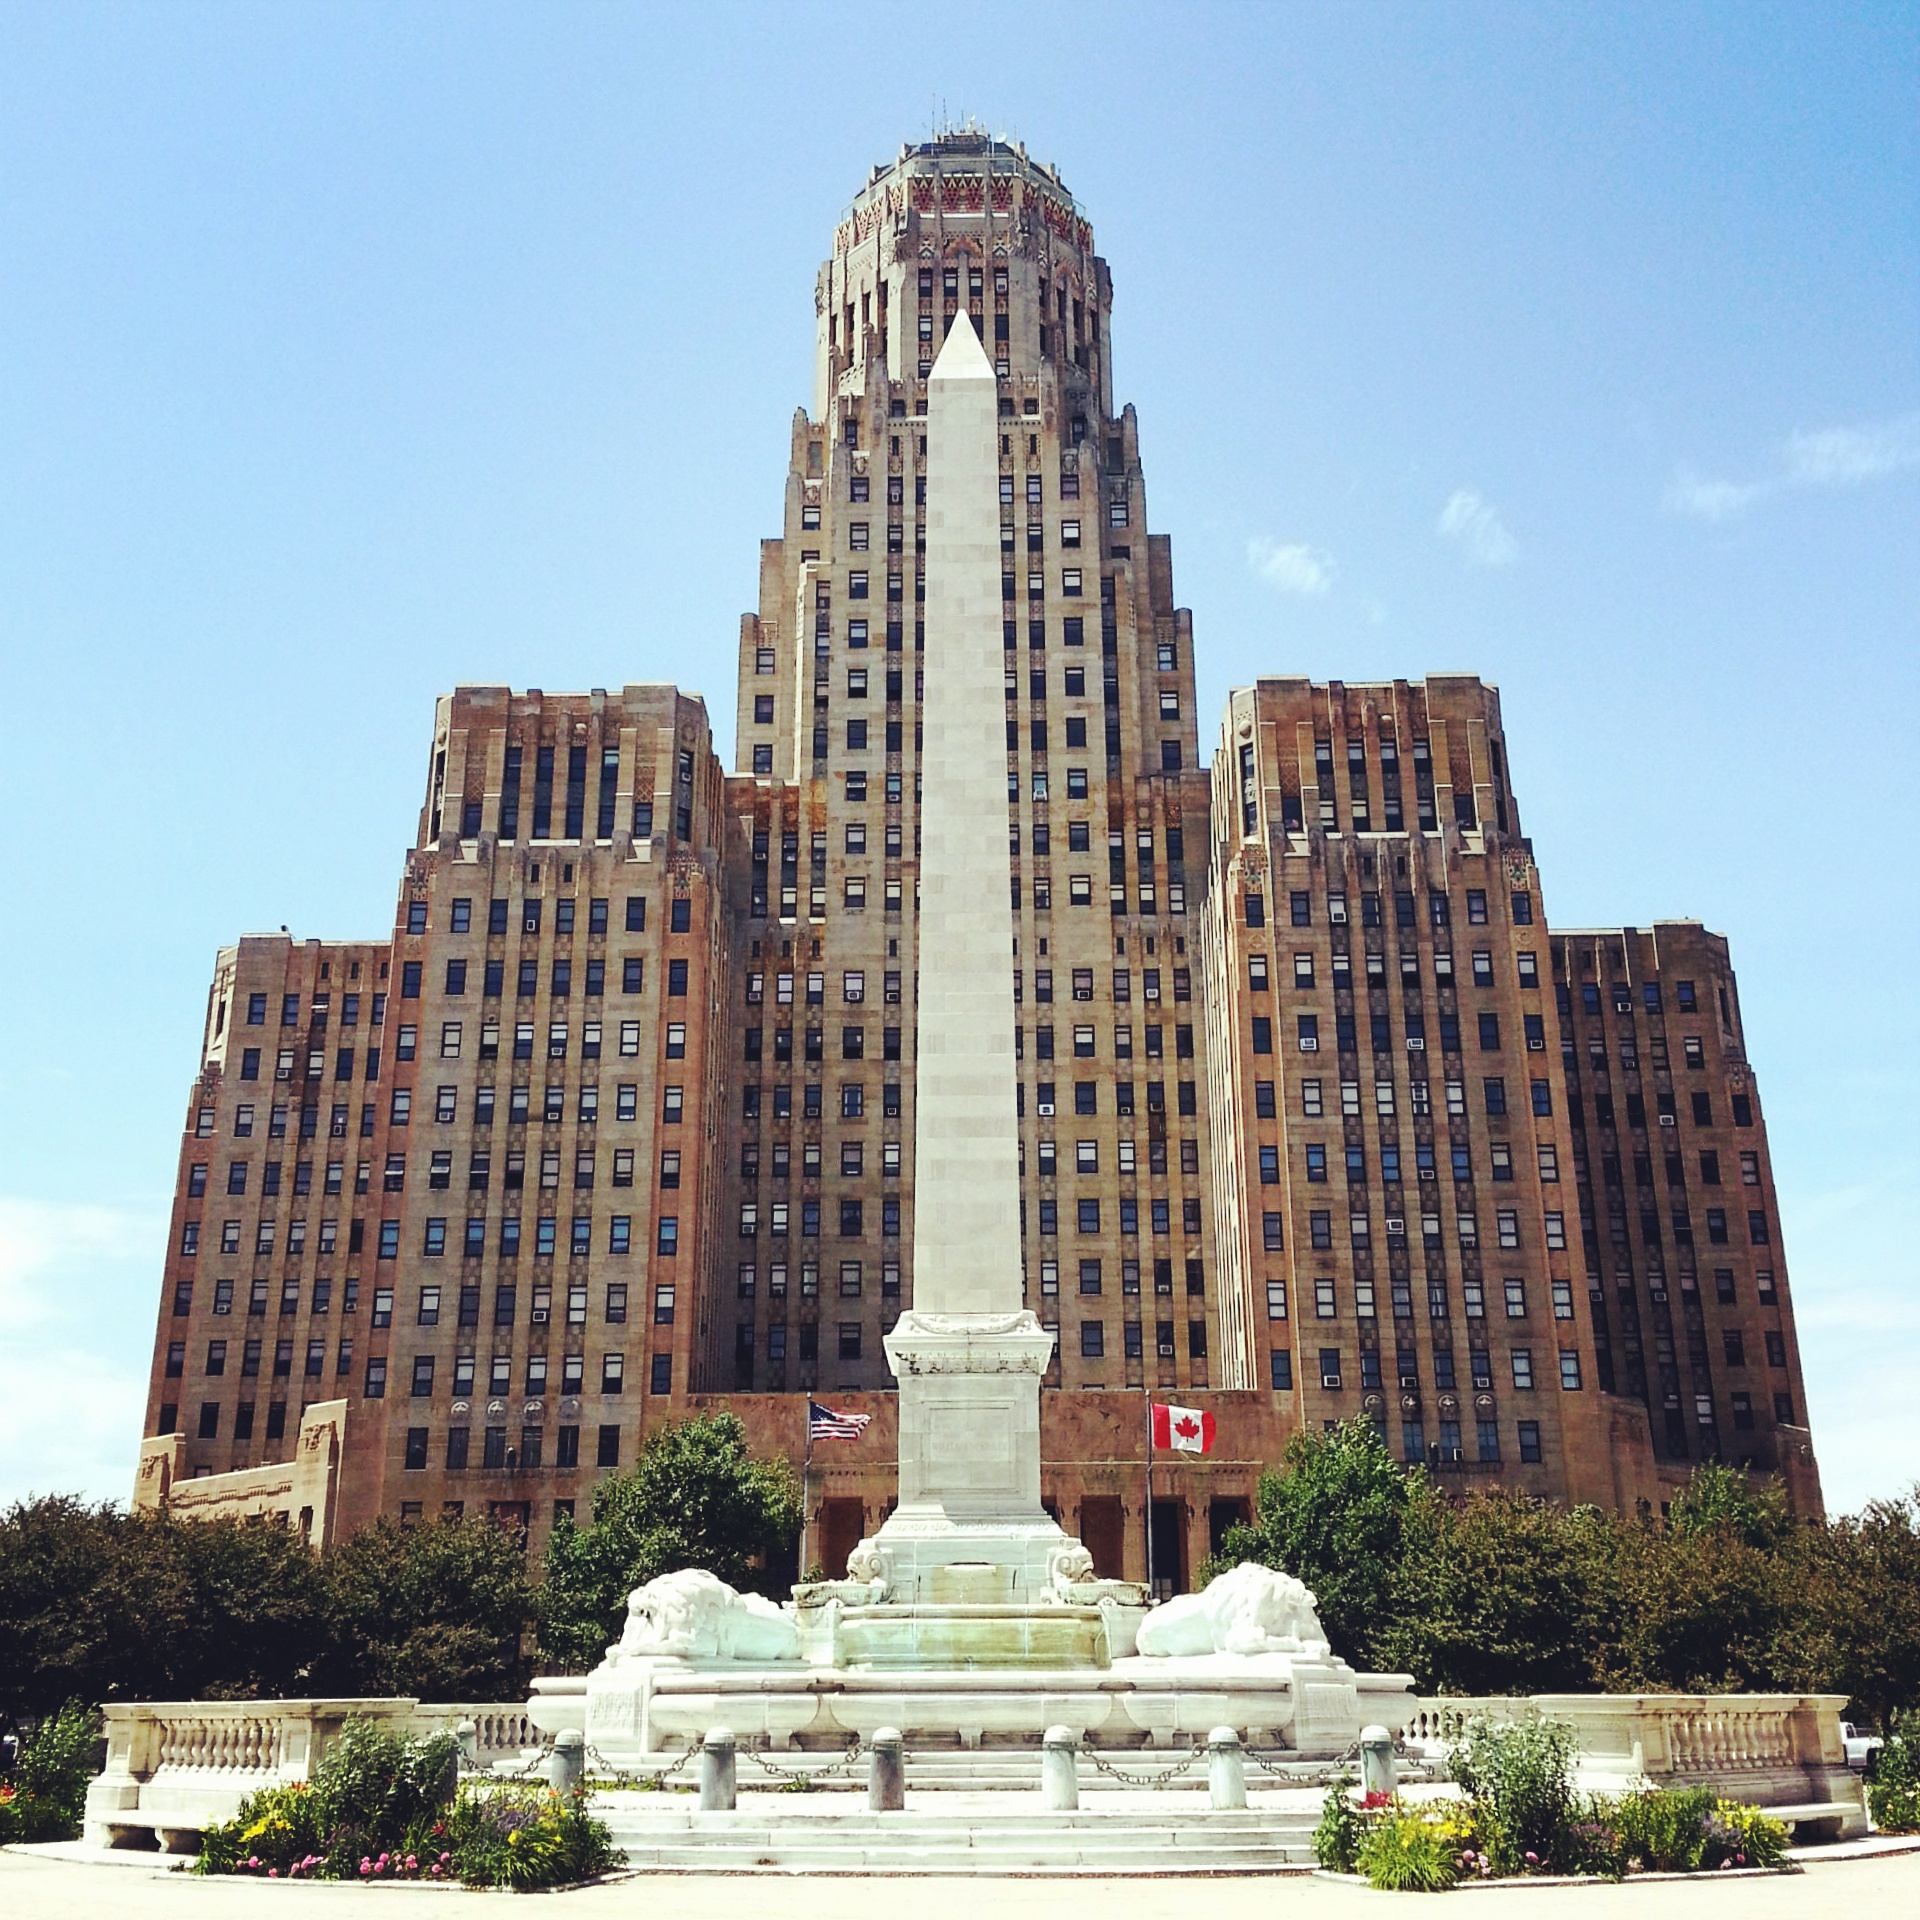 Buffalo City Hall.  McKinley Monument in the front defining the city center.